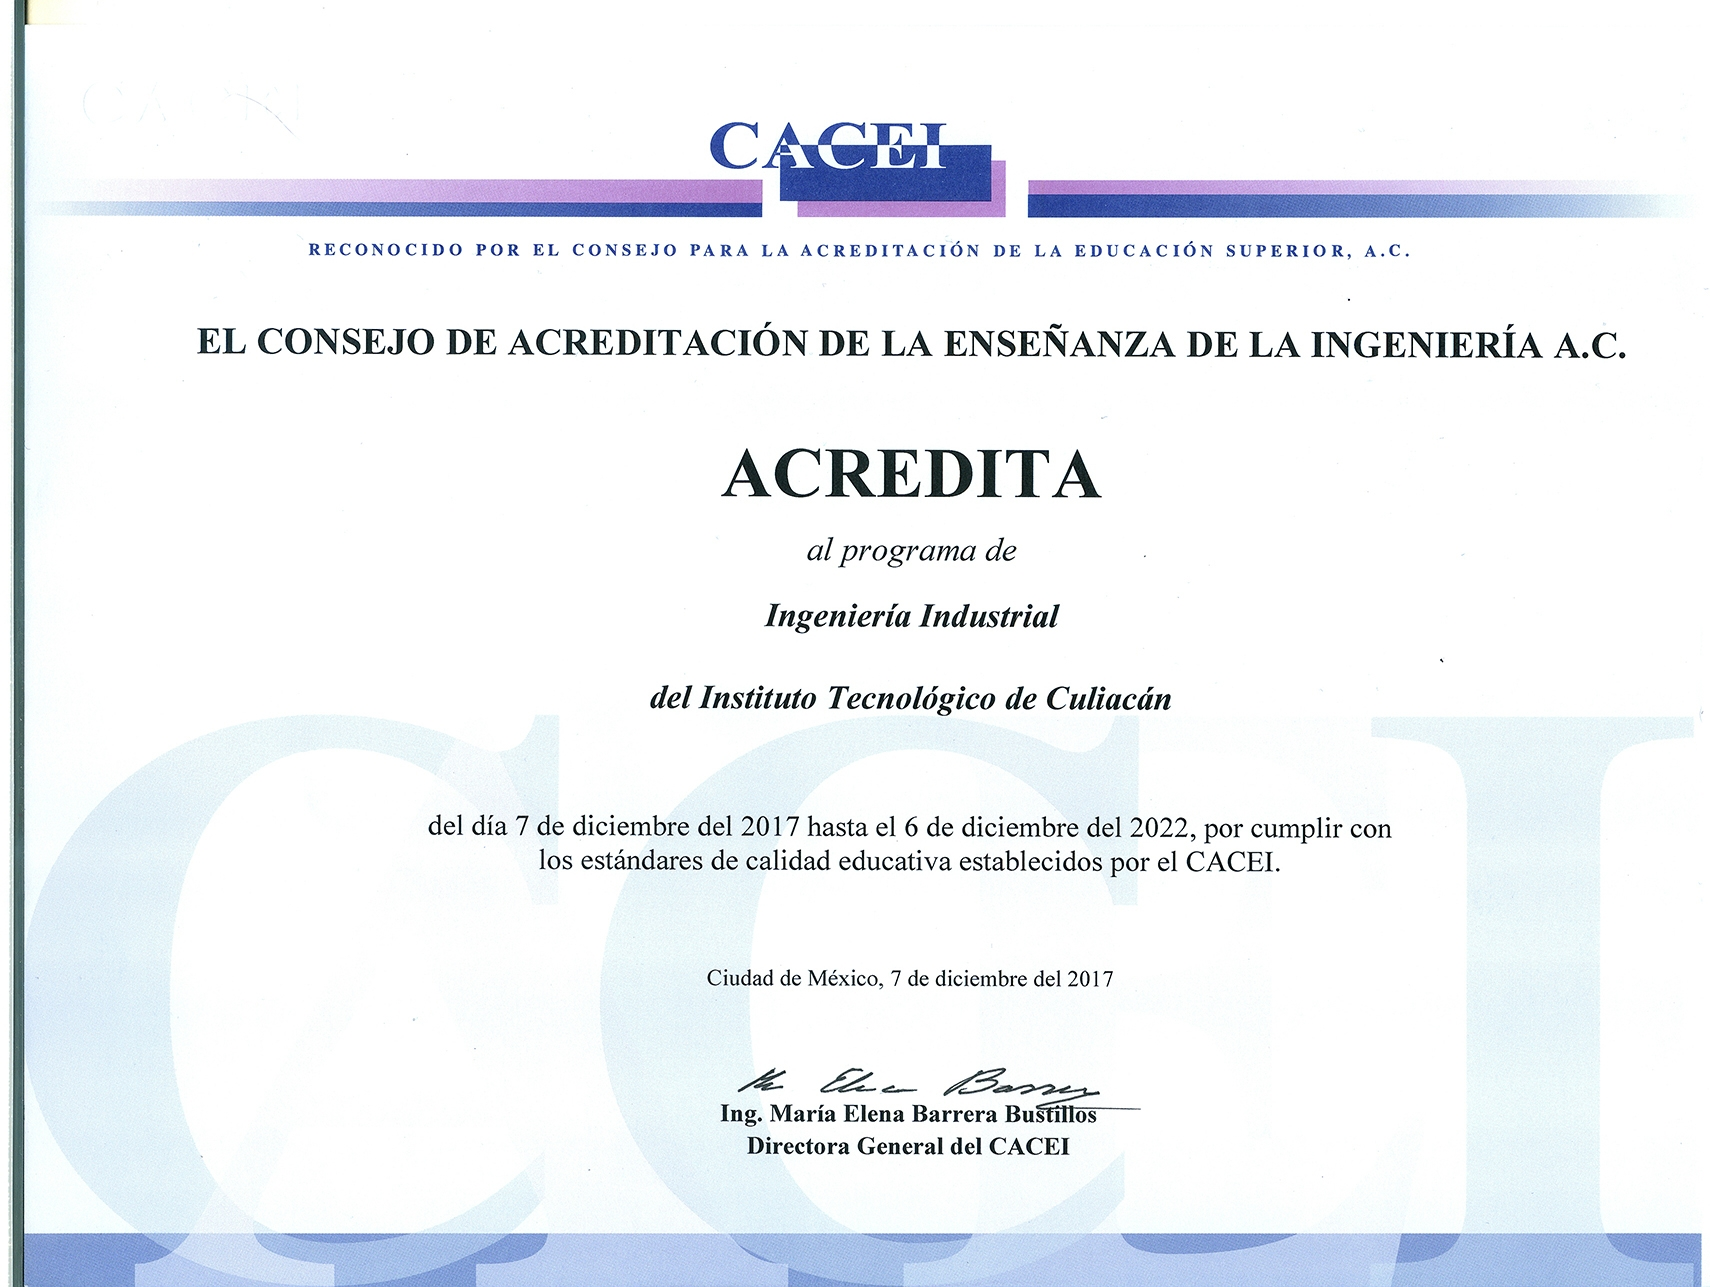 ACREDITACION INDUSTRIAL 2017 OK